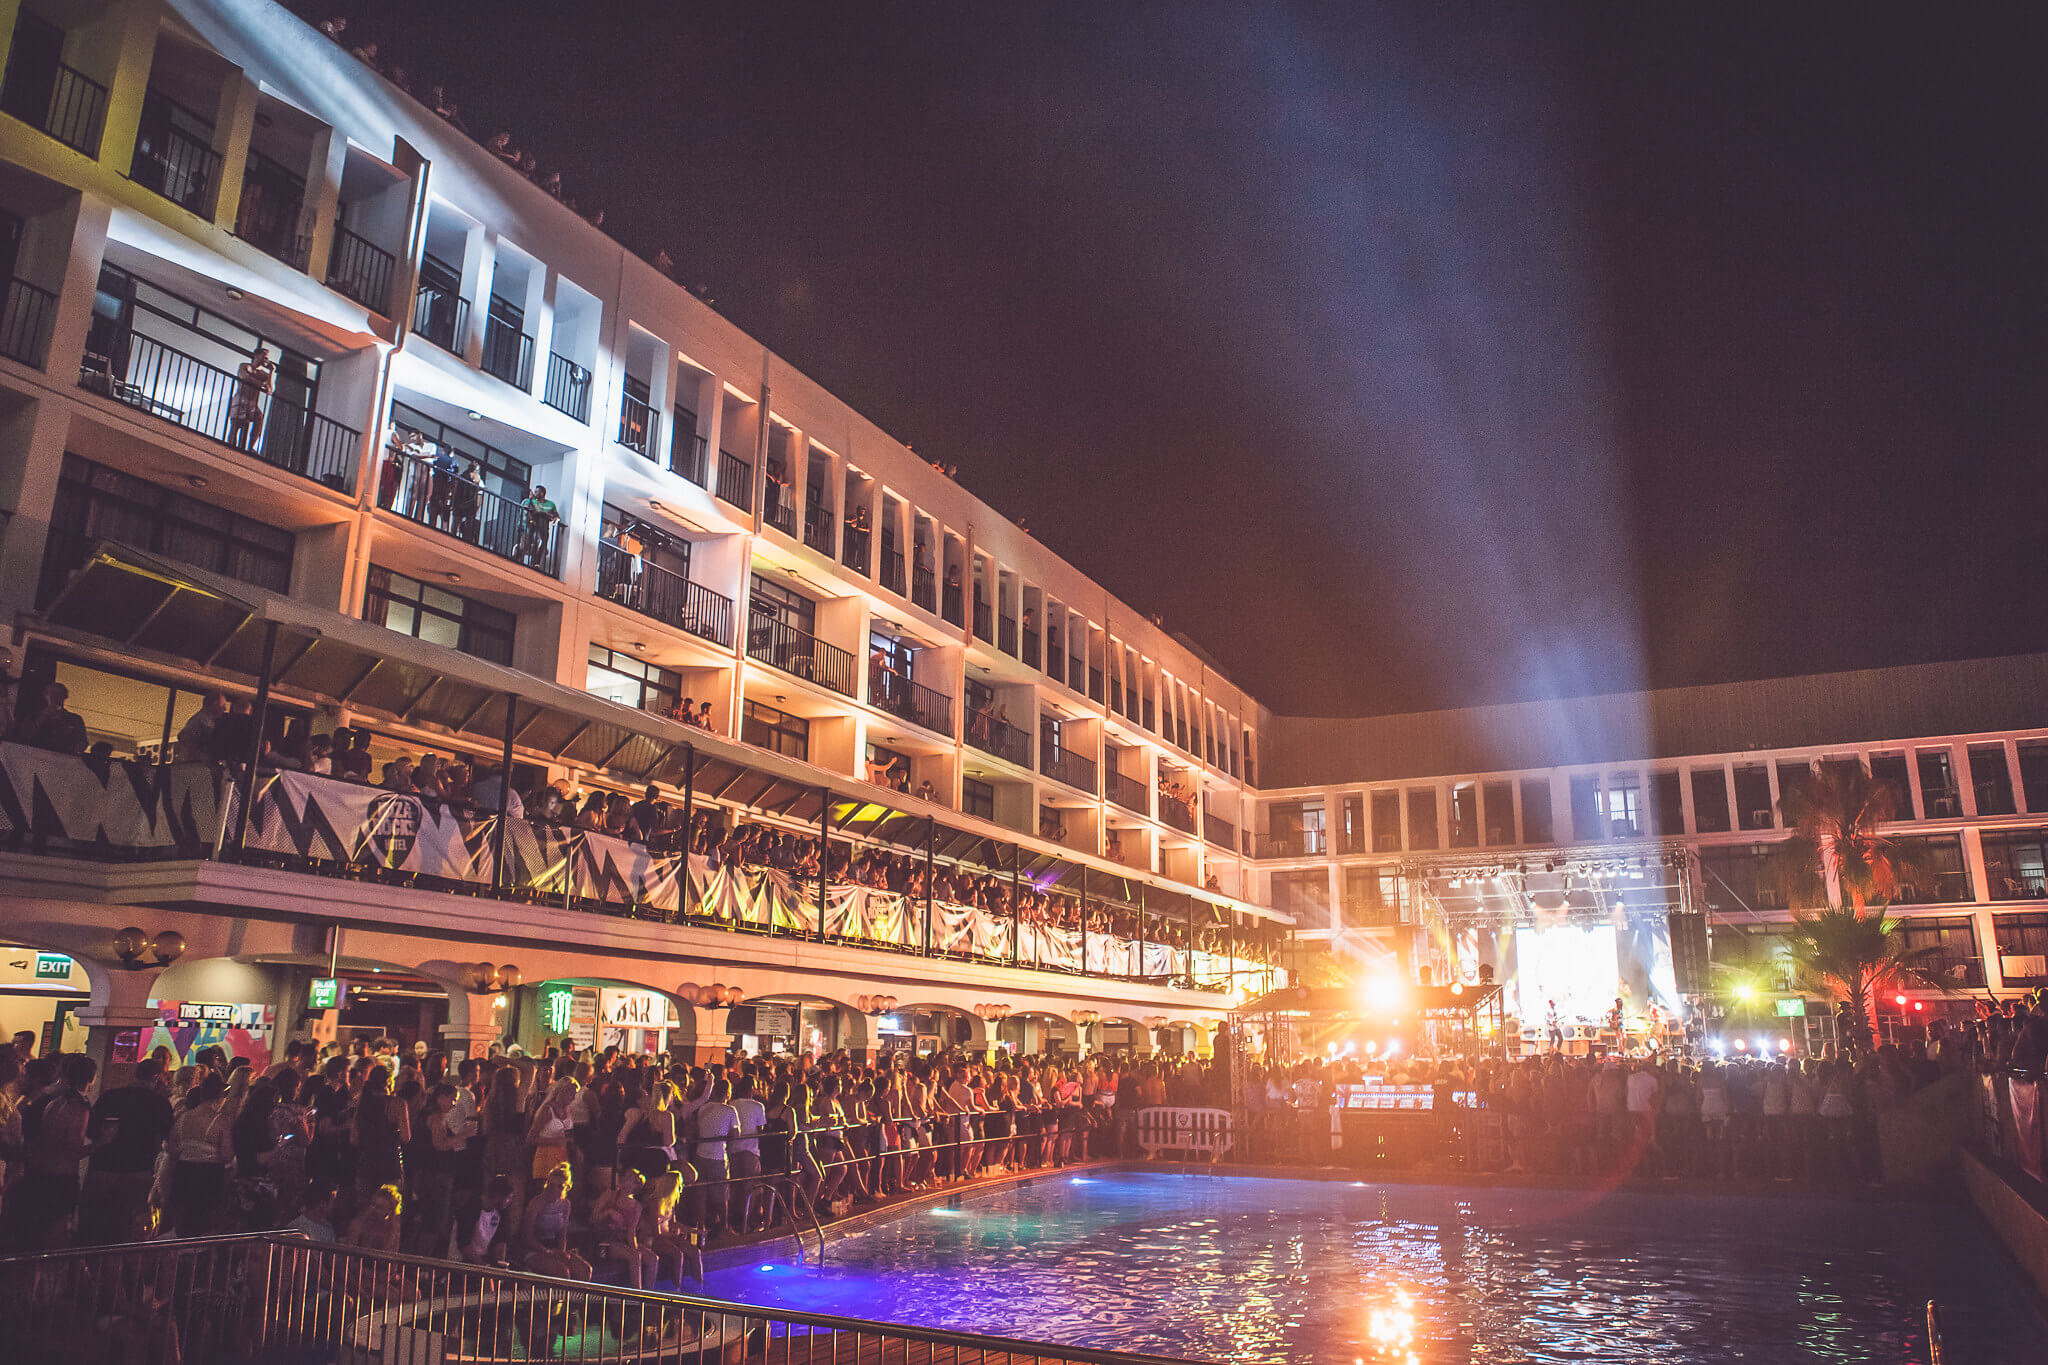 https://www.white-ibiza.com/wp-content/uploads/2020/04/ibiza-rocks-hotel-2020-08.jpg